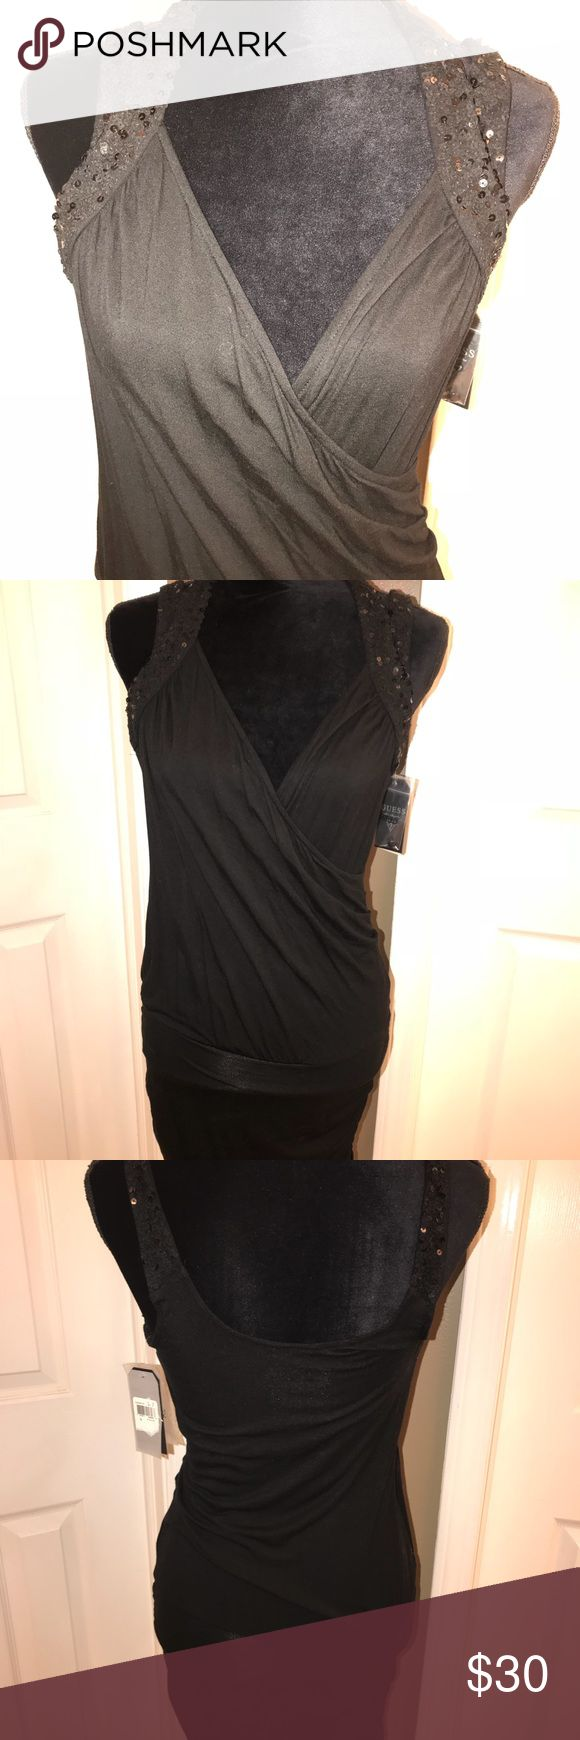 Sexy Guess dress Fitted super sexy Guess dress perfect for the new year!!  No snags 94% Rayon 6% Spandex Smoke free home bundle for discounts offers are welcome 😀 Guess Dresses Mini